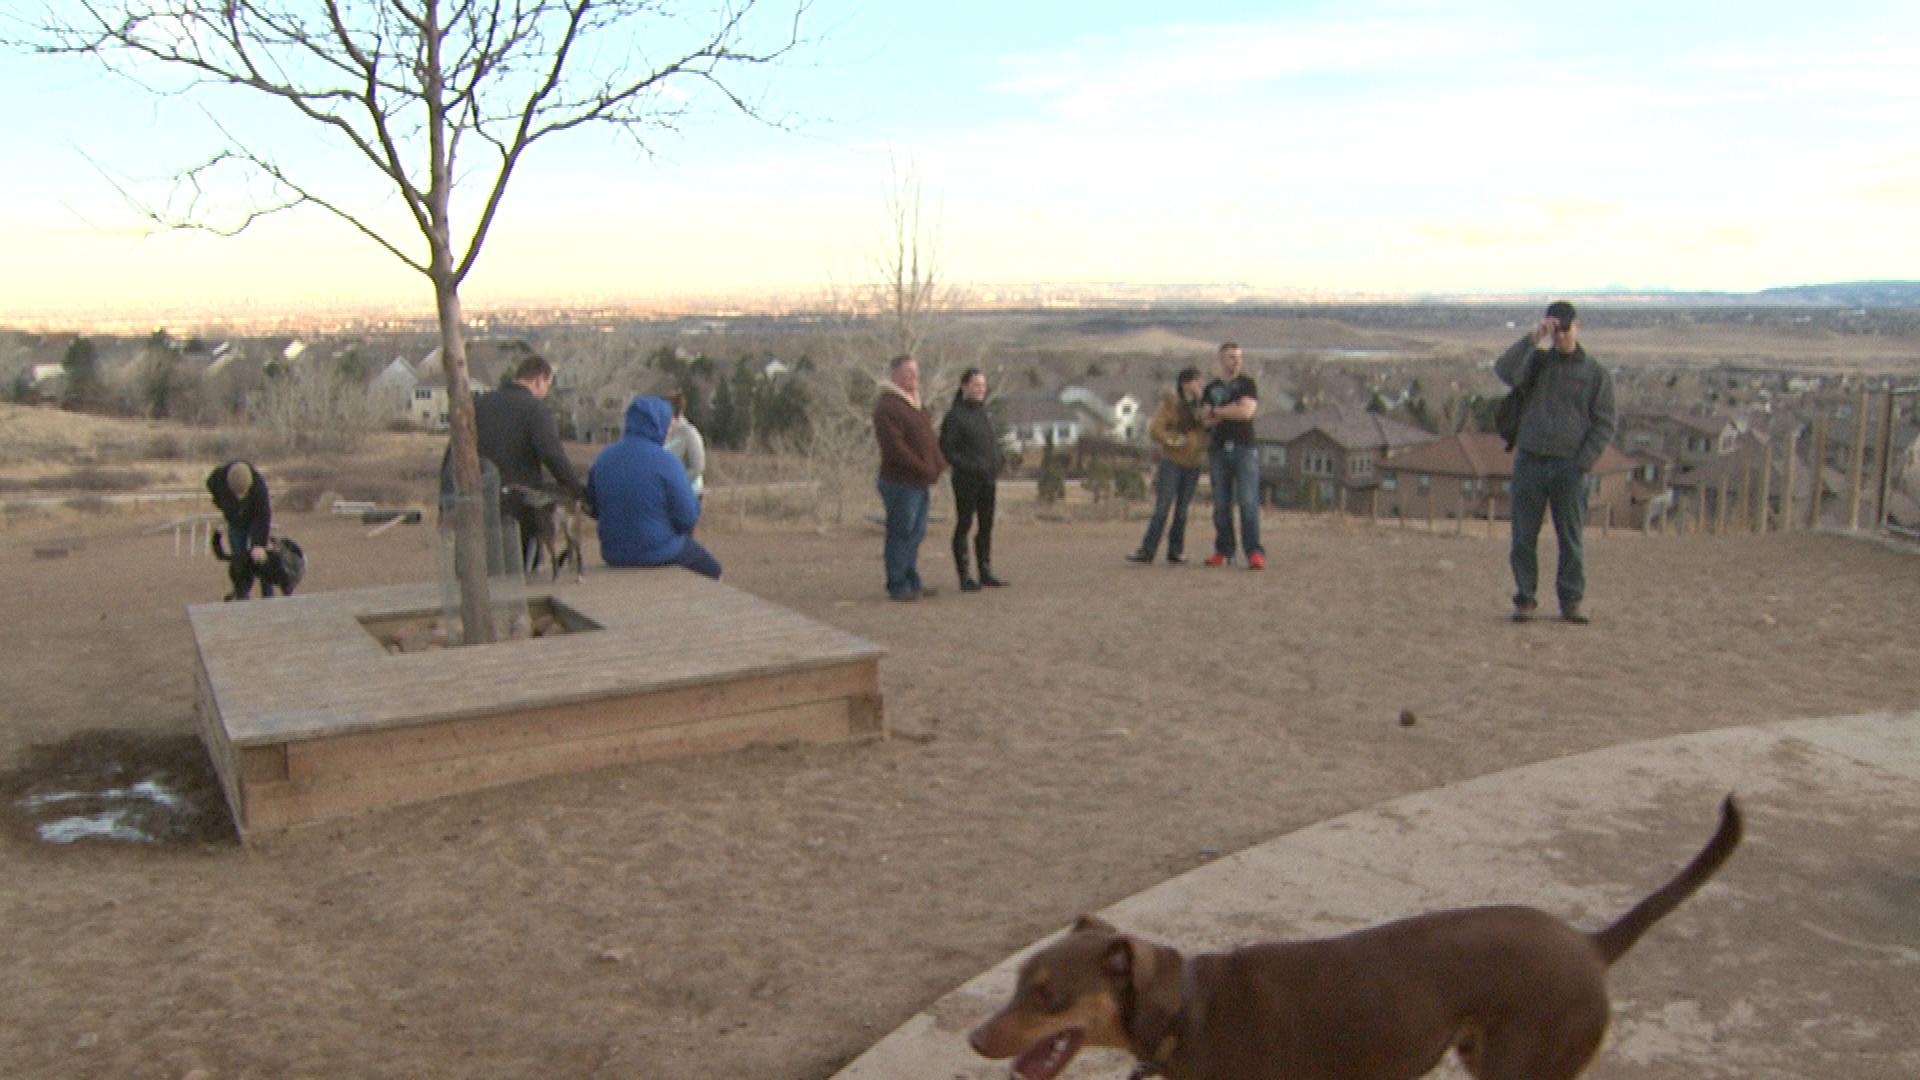 The dog park where the crime happened. (credit: CBS)